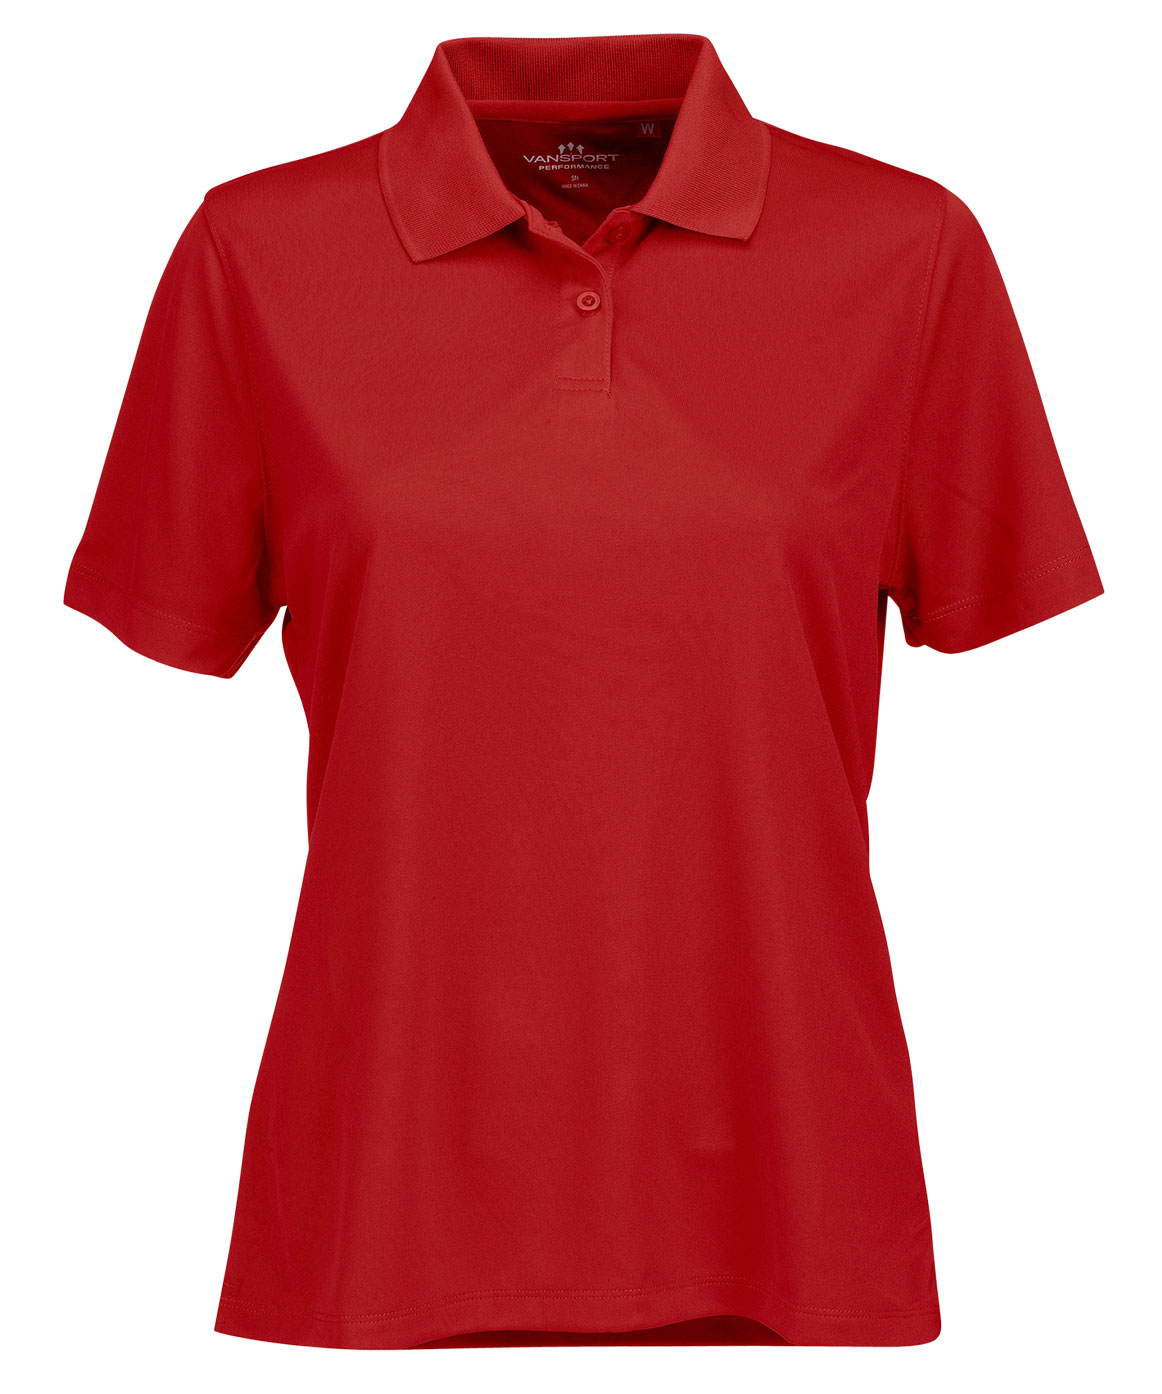 Womens Vansport™ Omega Solid Mesh Tech Polo